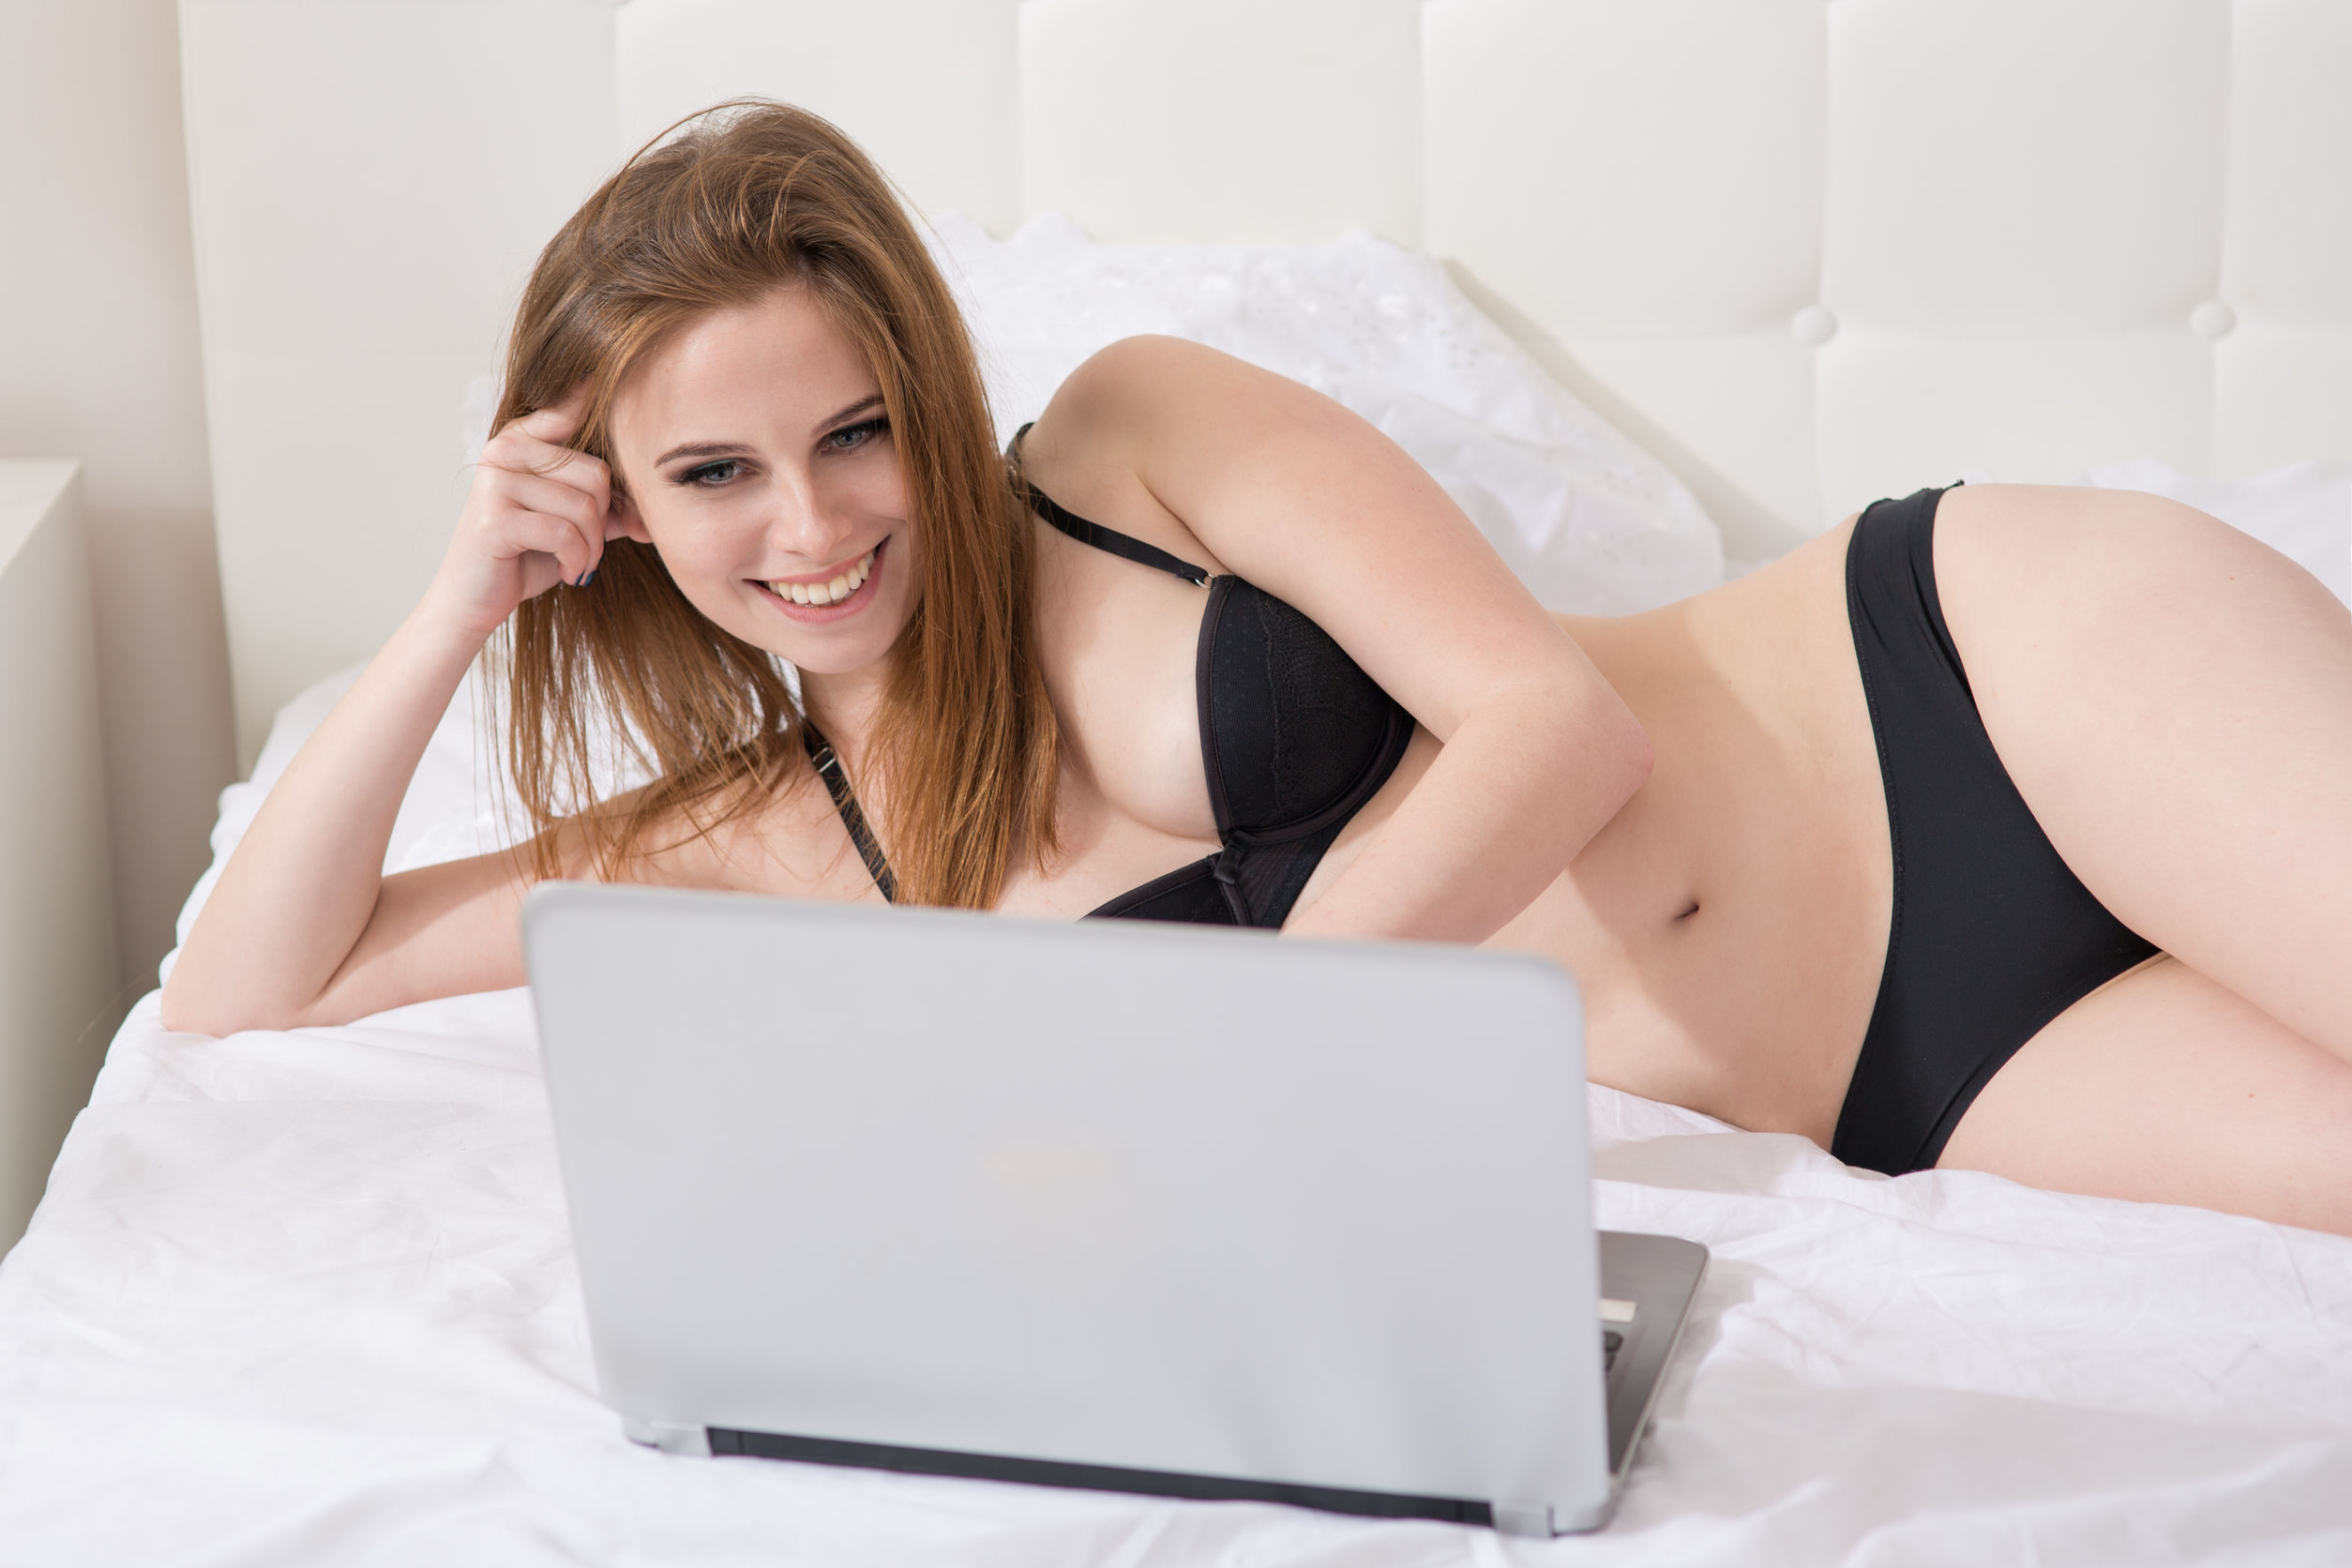 beautiful woman with a laptop on the bed cyber swinging